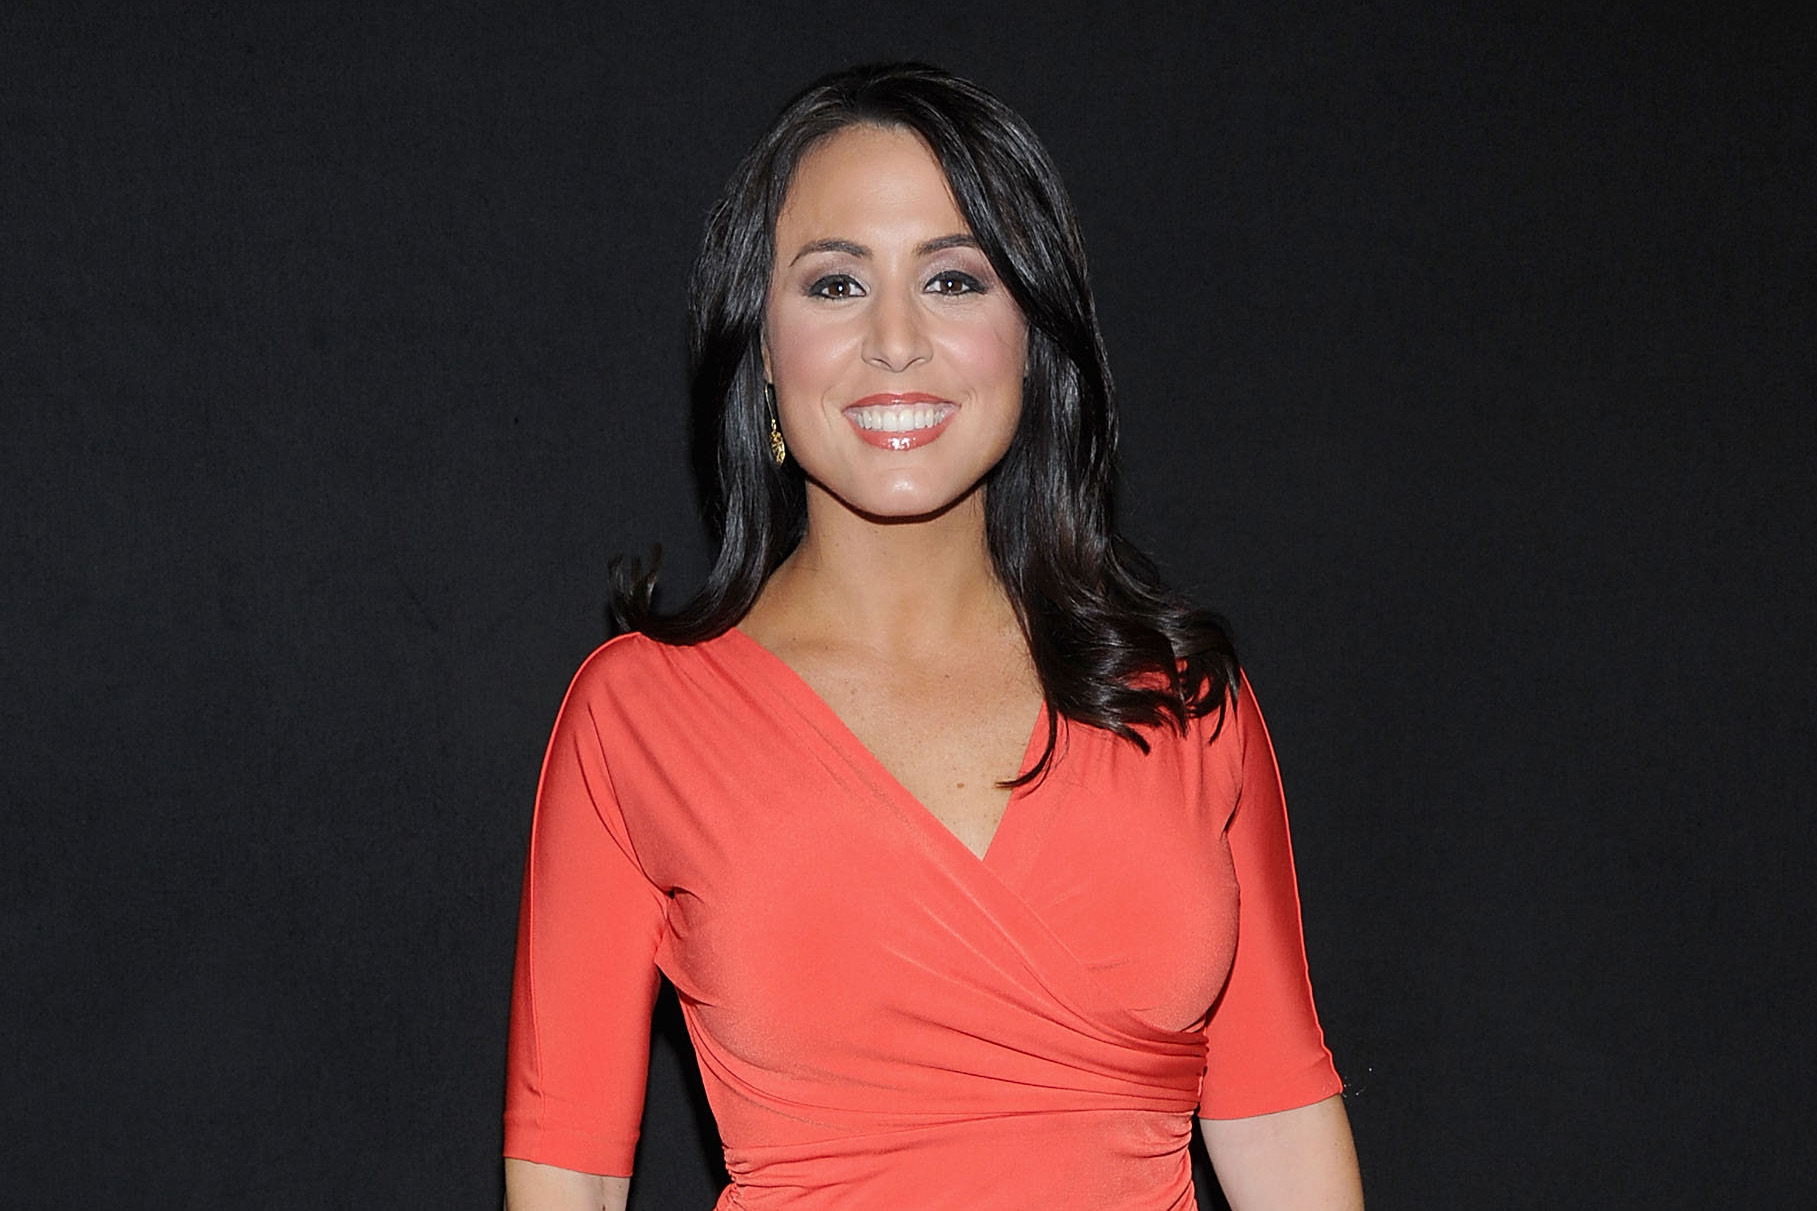 huddy single girls We all love sexy, intelligent women doing the news and it seems fox news may have the best overall quality of females so here are the 19 hottest that.